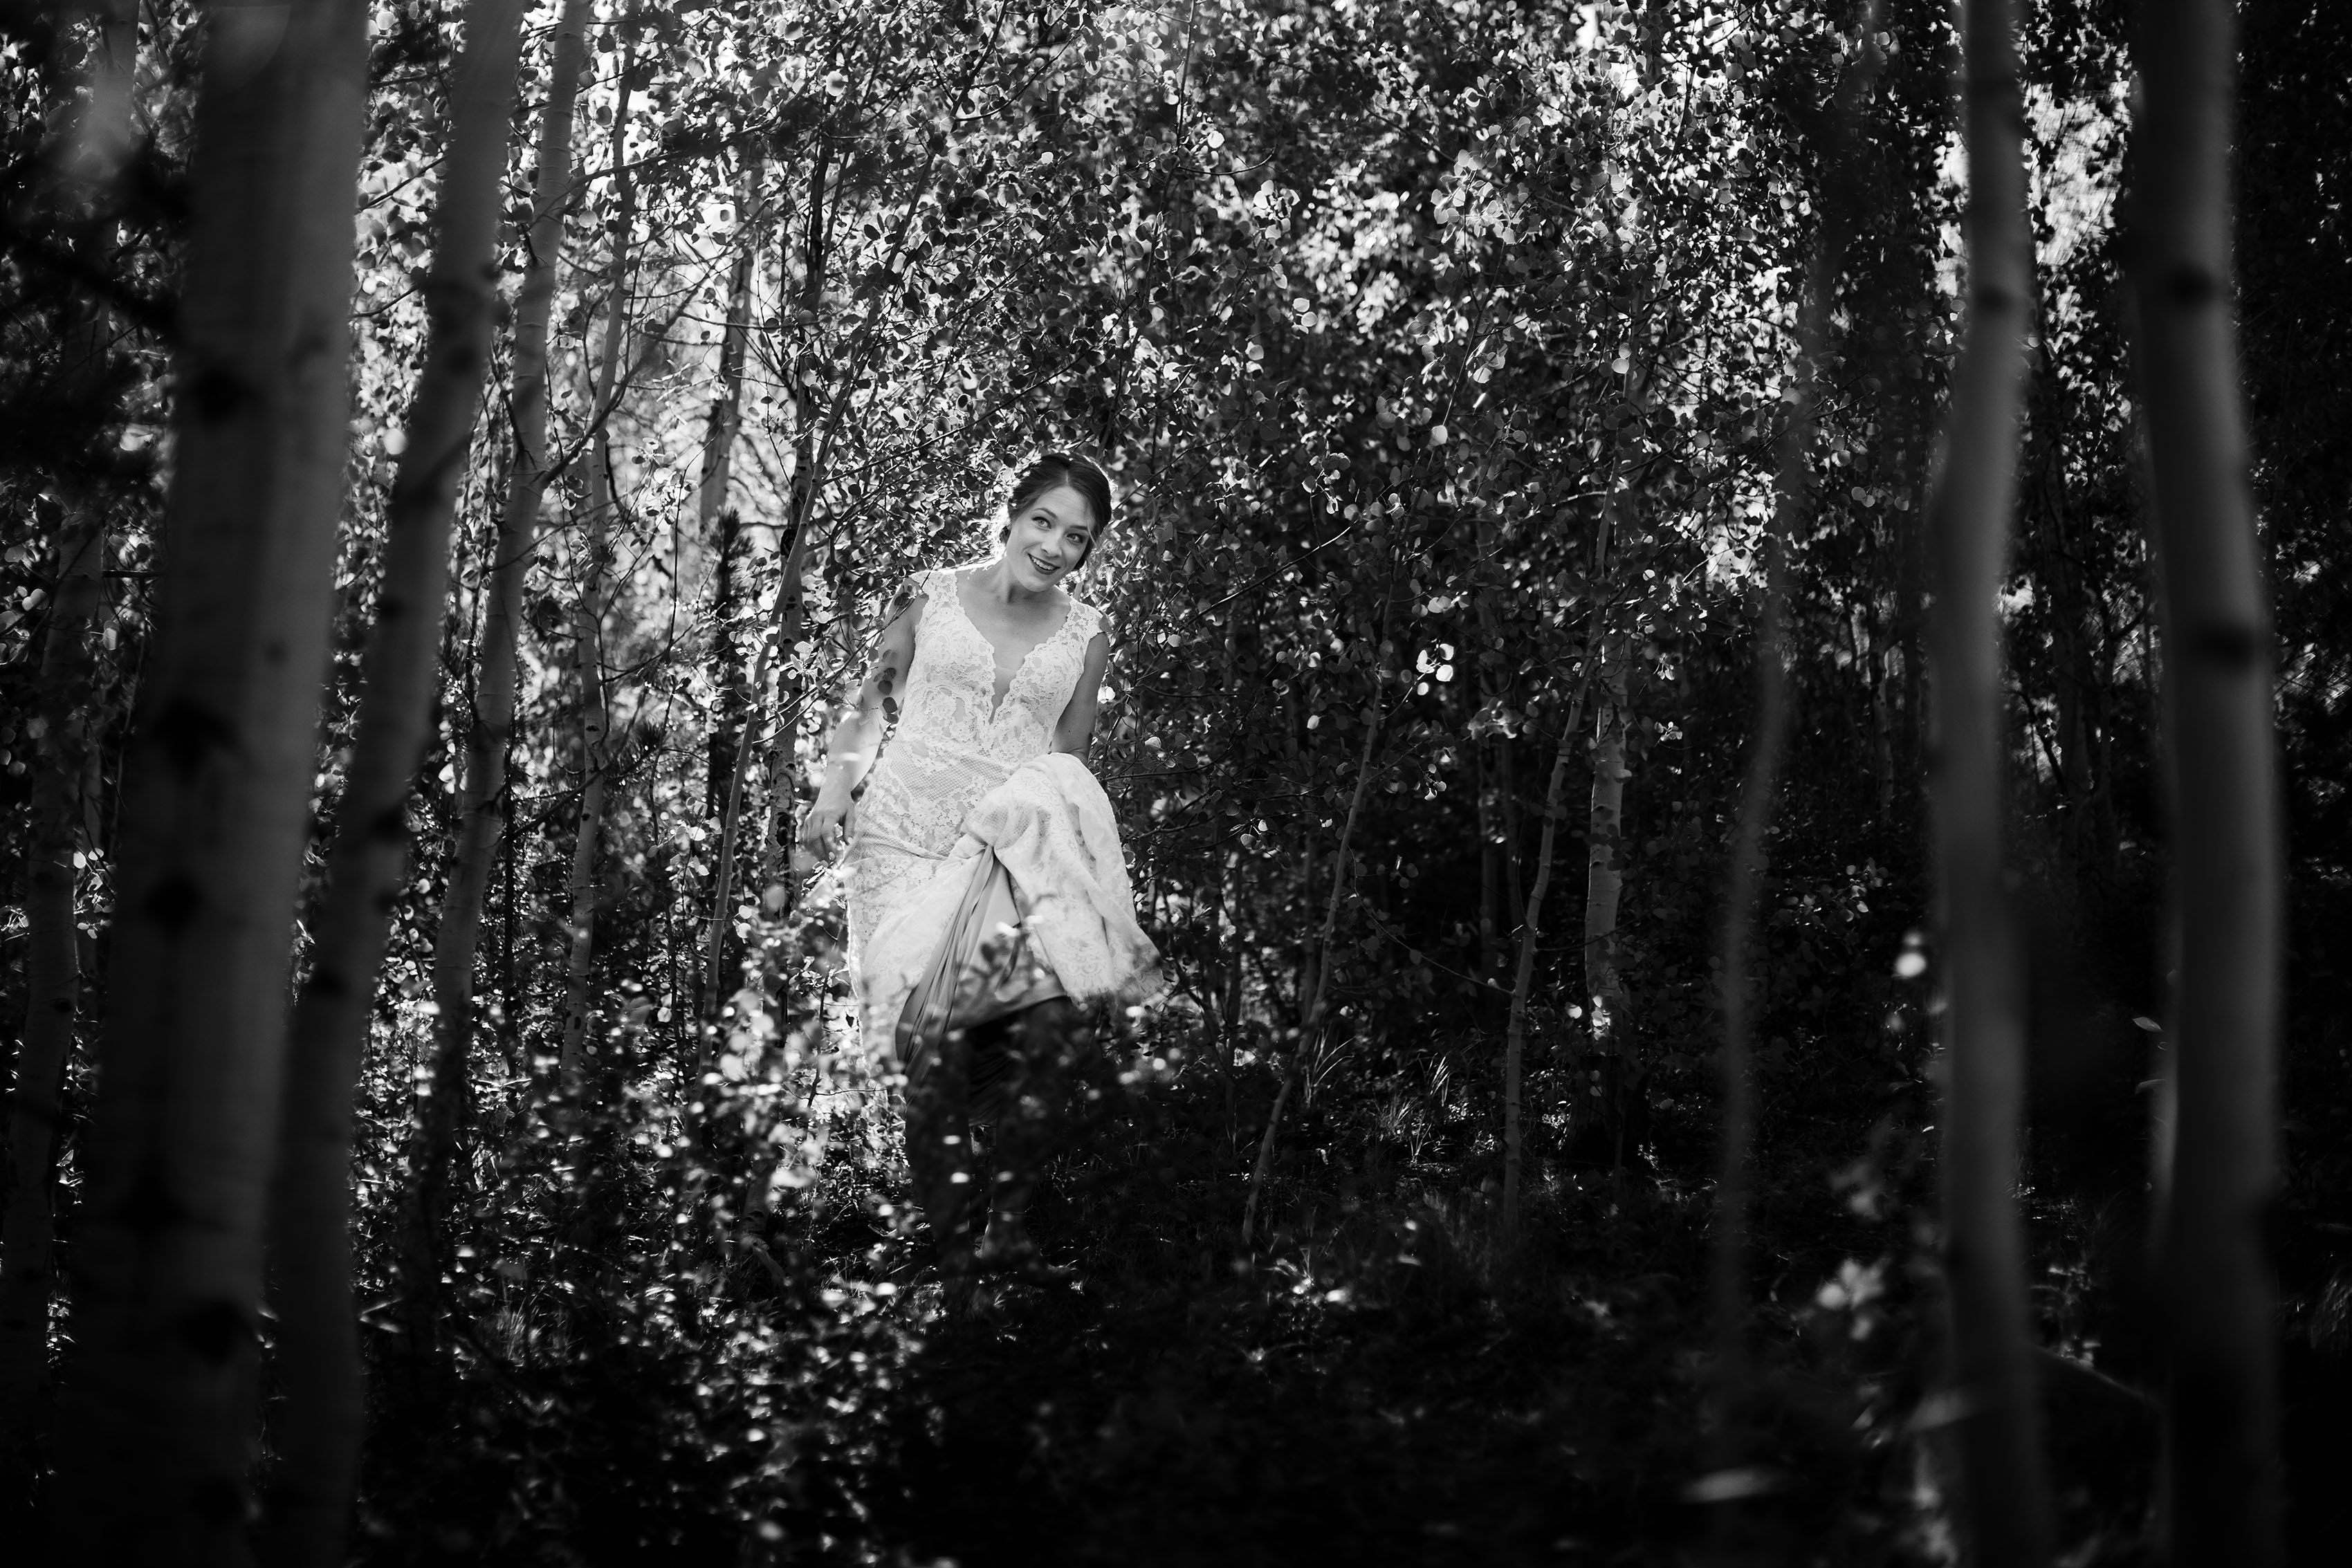 The bride walks through an aspen grove